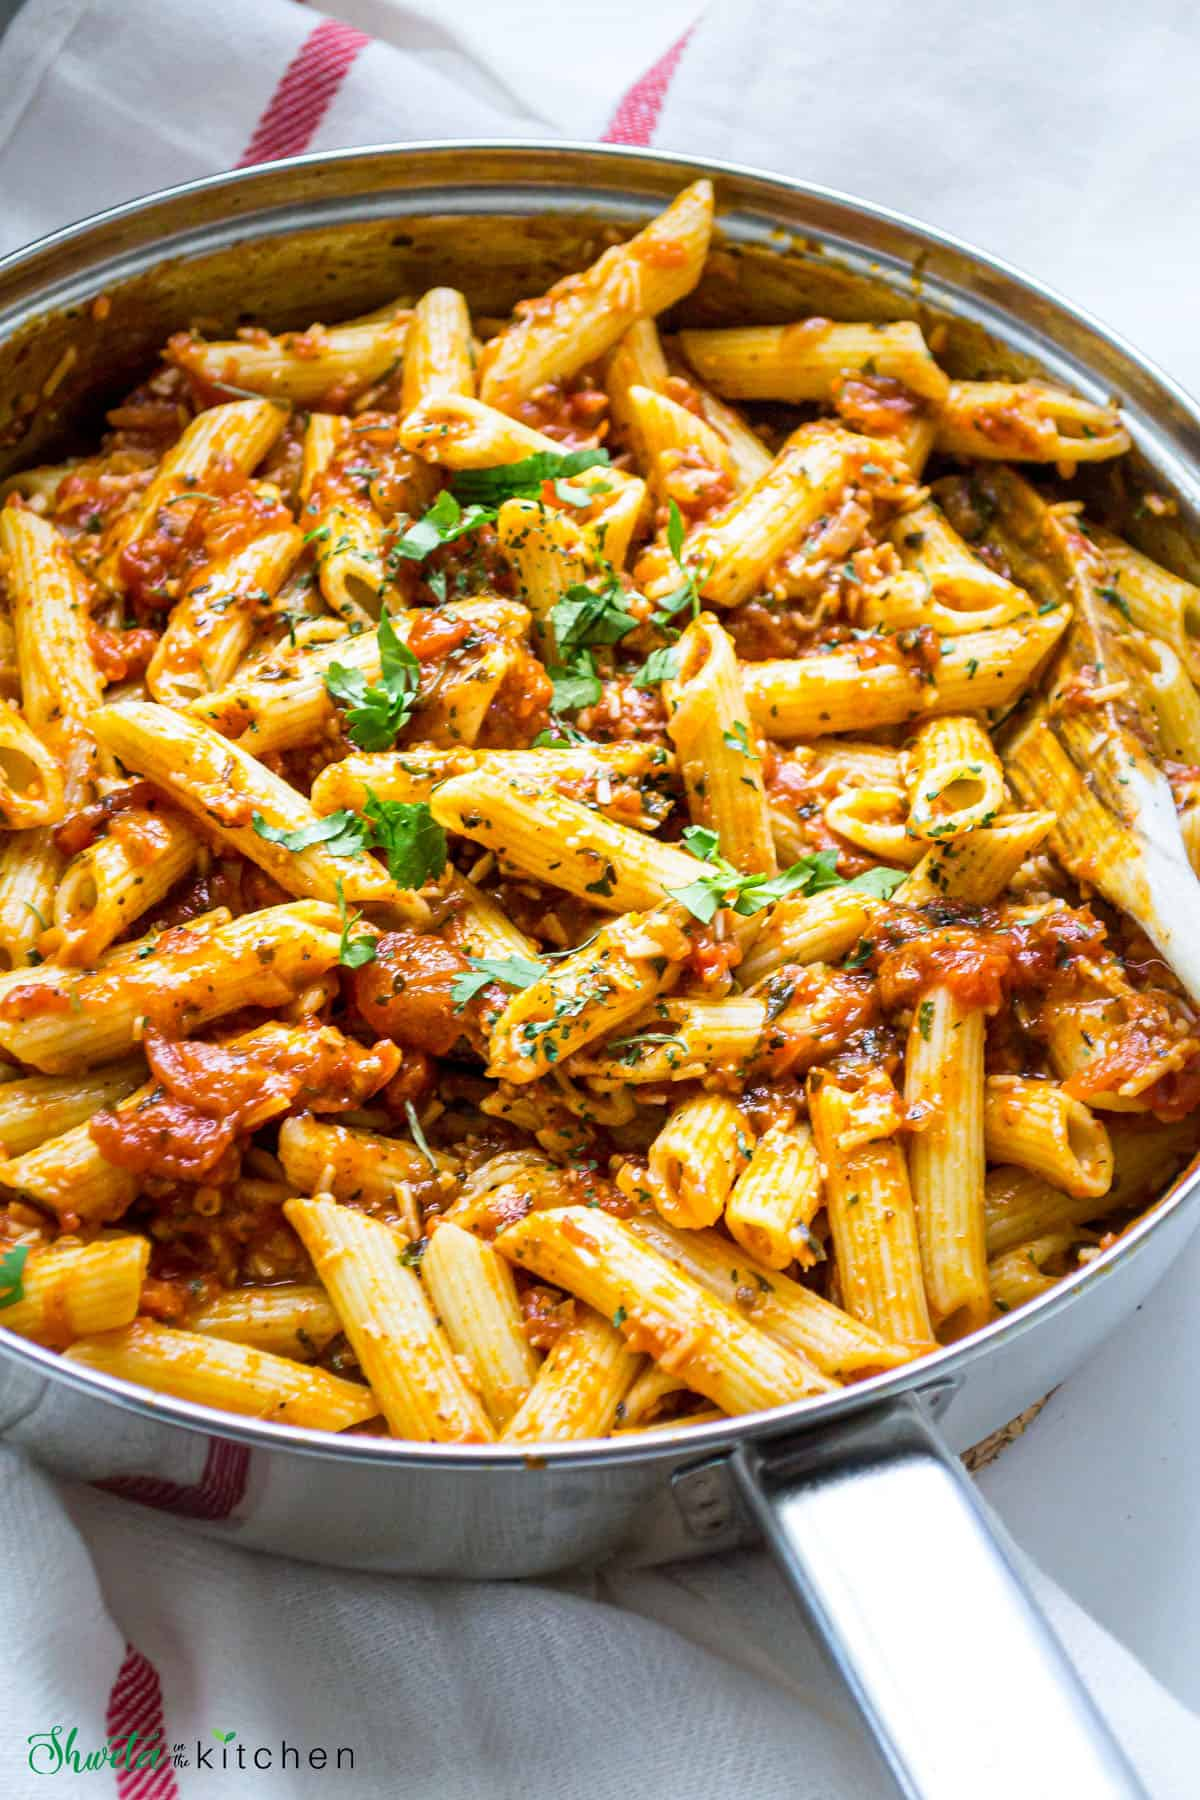 A wooden spoon in a pan of penne pasta with arrabbiata sauce